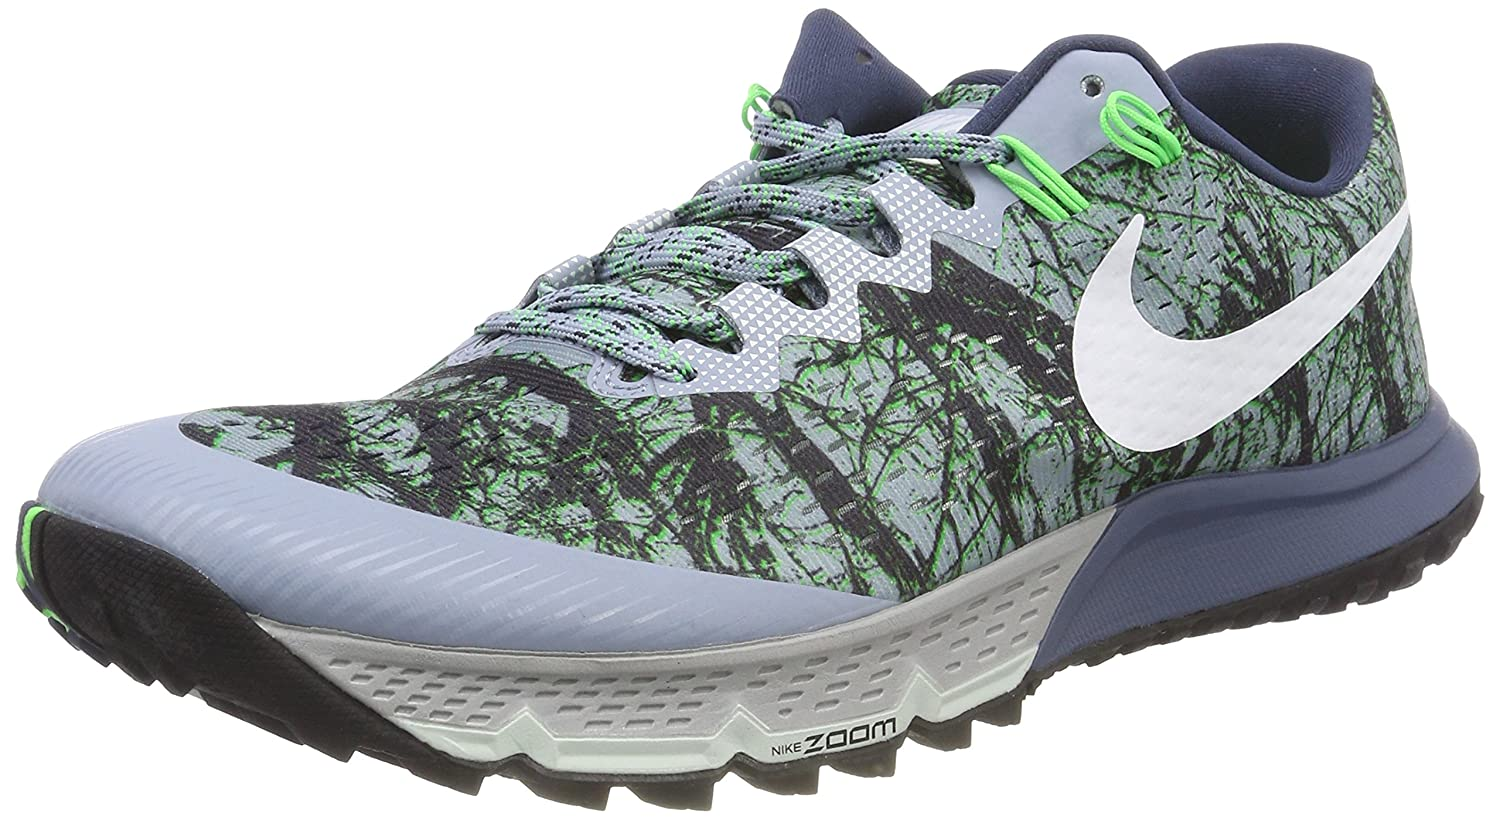 b6a4ebfa1000d Nike Men s AIR Zoom Terra Kiger 4 Training Shoes Grey Diffused Blue Rage  Green White 400